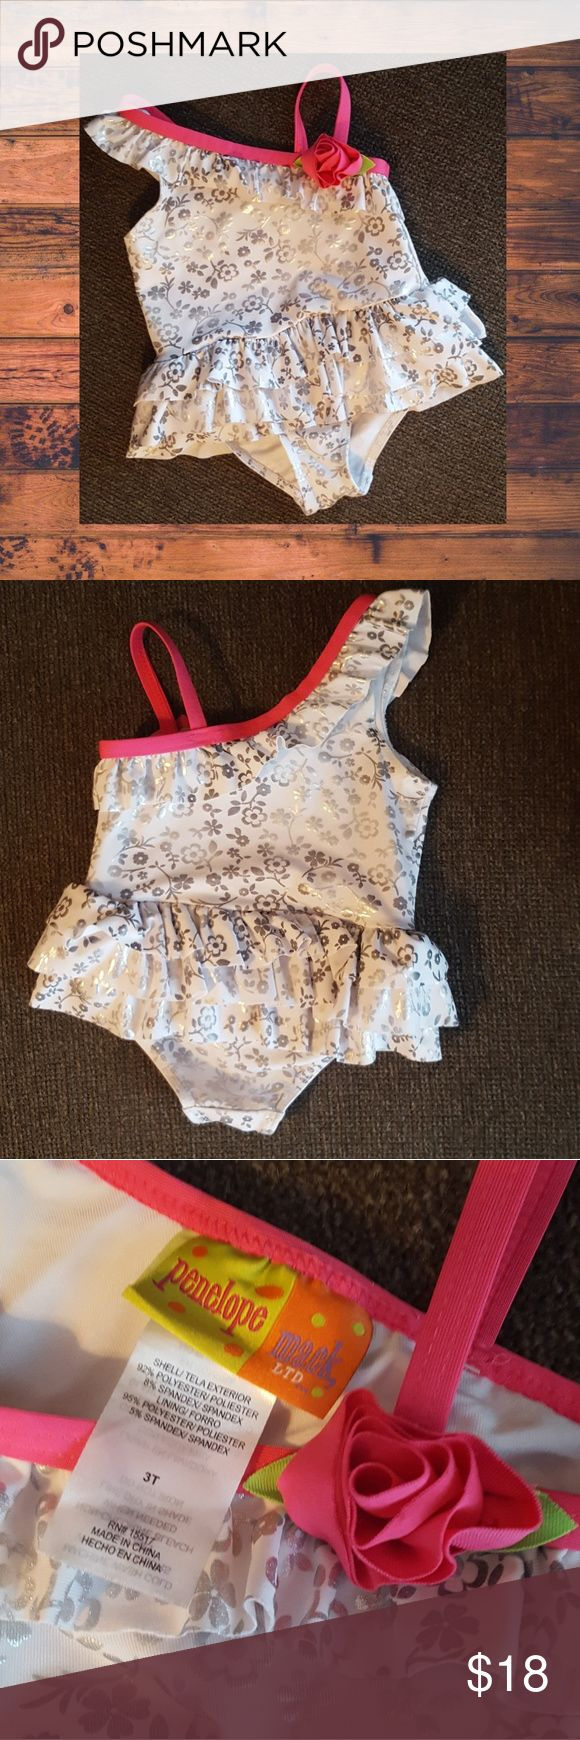 ADORABLE, NEVER WORN! Metallic Silver One Piece So cute, one piece silver metallic suit with ruffle and rose detail.  My little one never wore it due to being to small once our swim season came along. Penelope Mack Swim